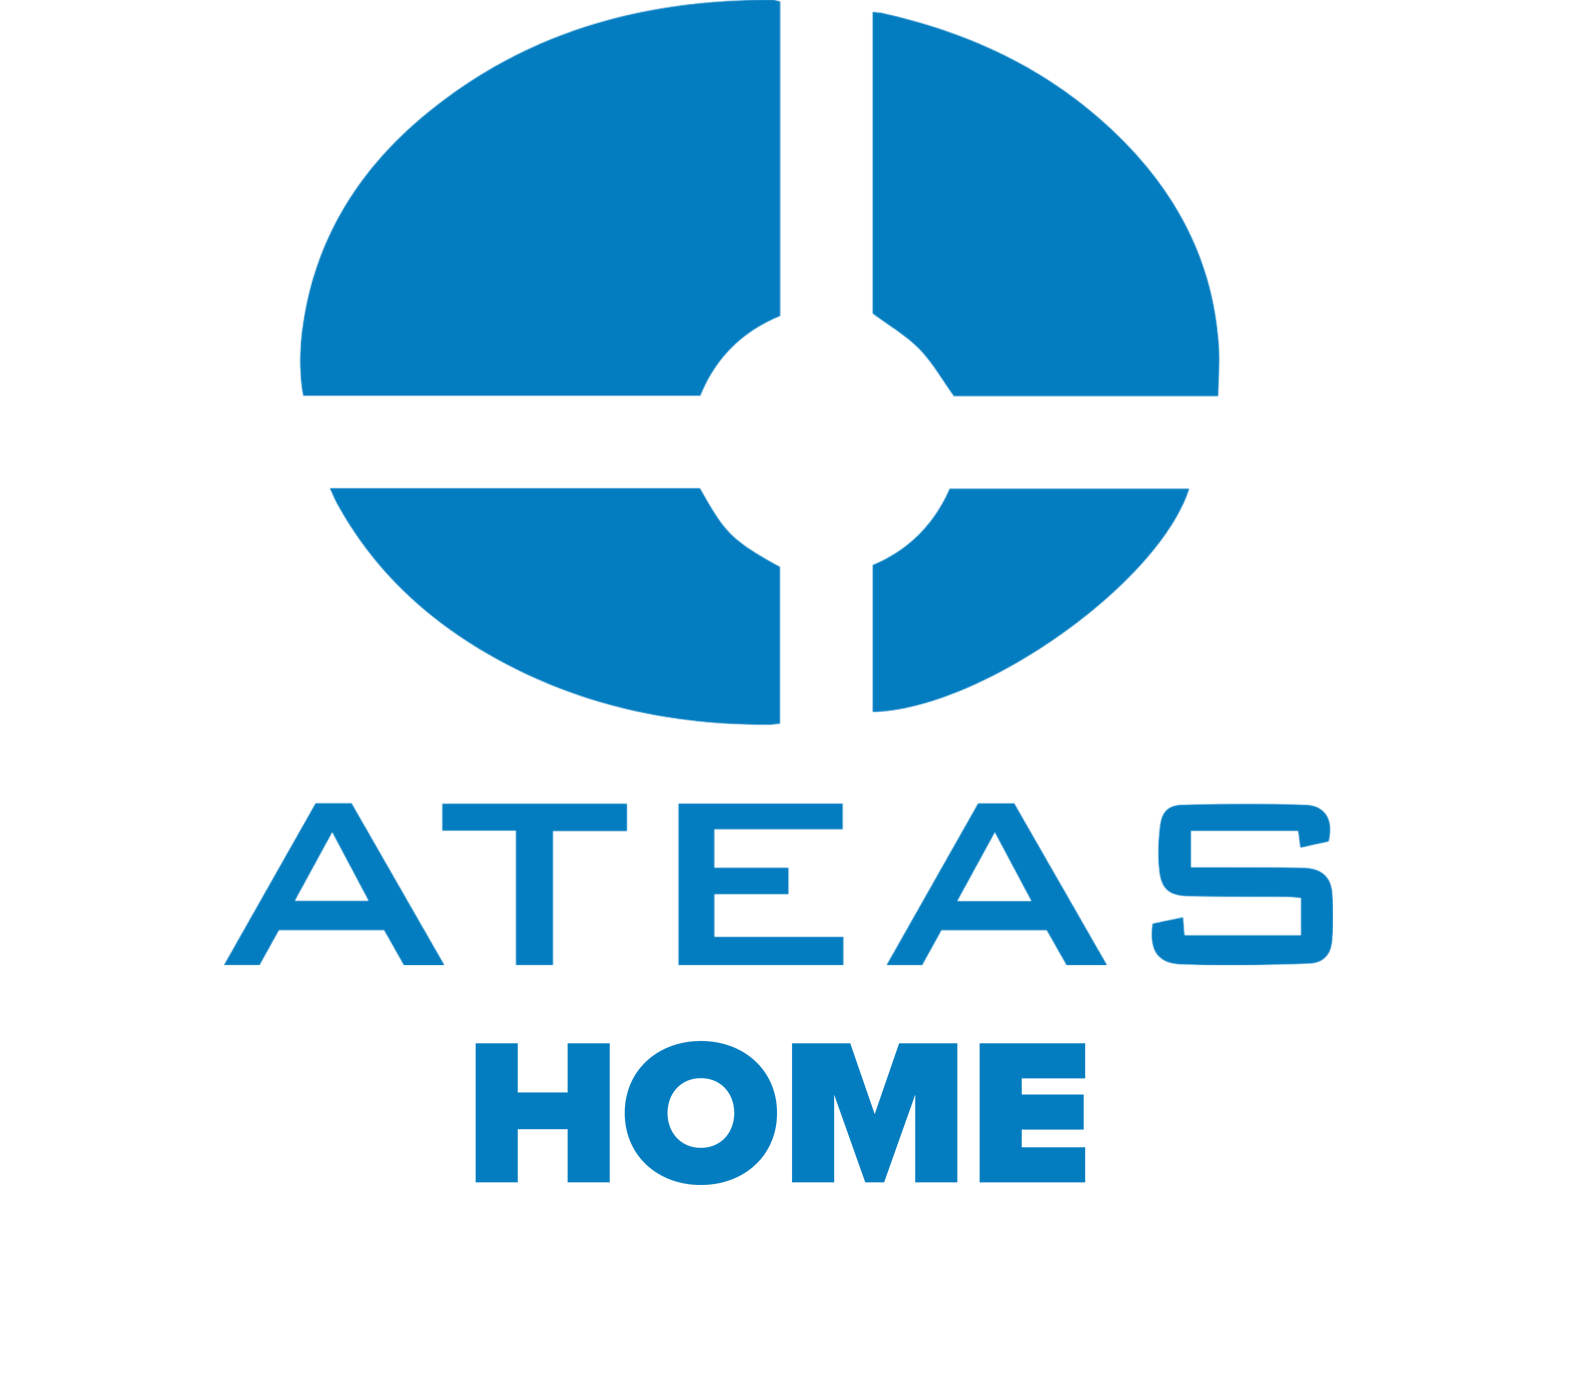 Logo edice Ateas Security Home